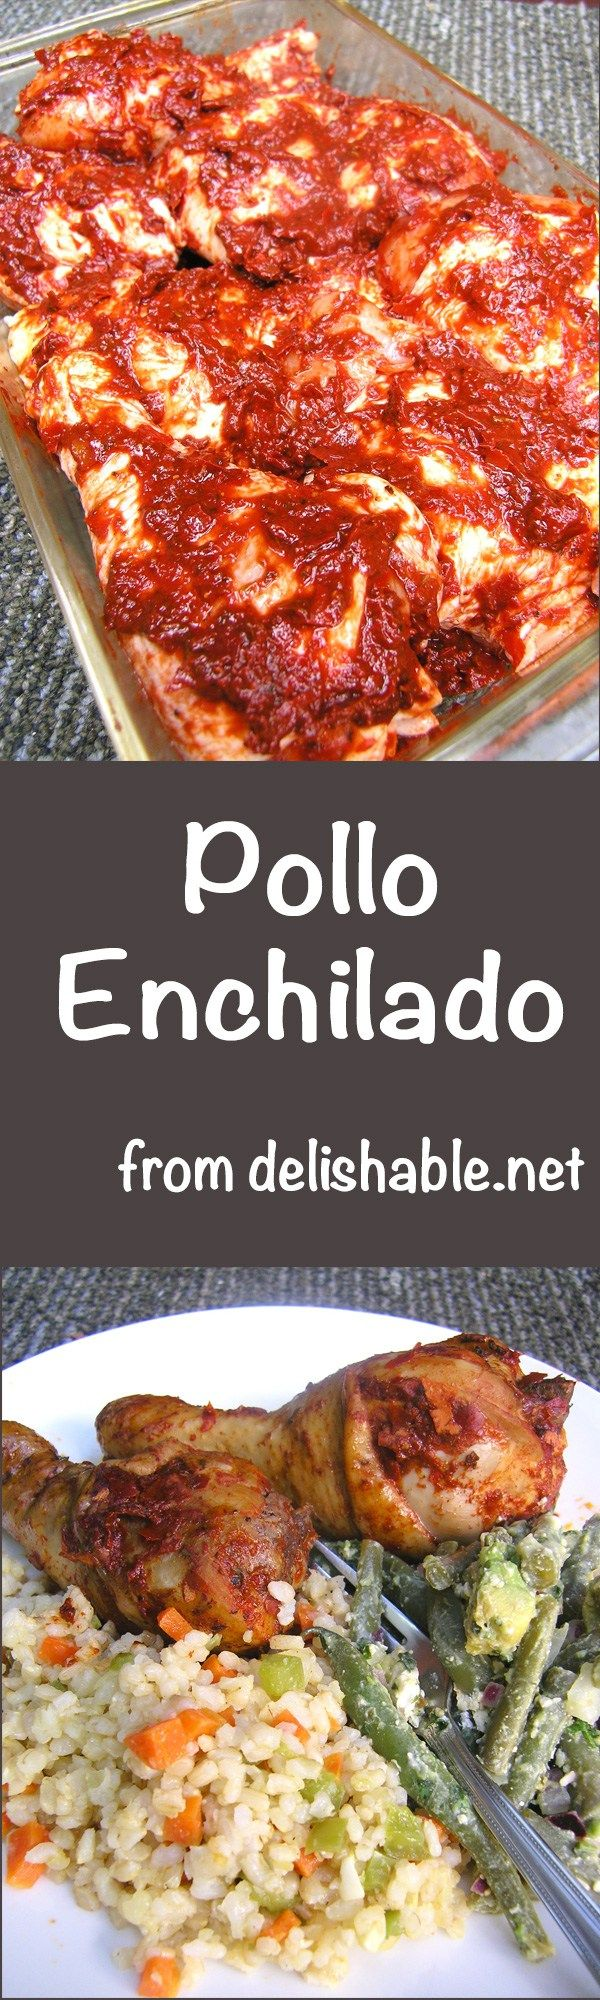 Pollo Enchilado recipe - chicken baked in an authentic Mexican chile sauce and trust me, it's worth a little extra trouble to make this delicious dish! | delishable.net